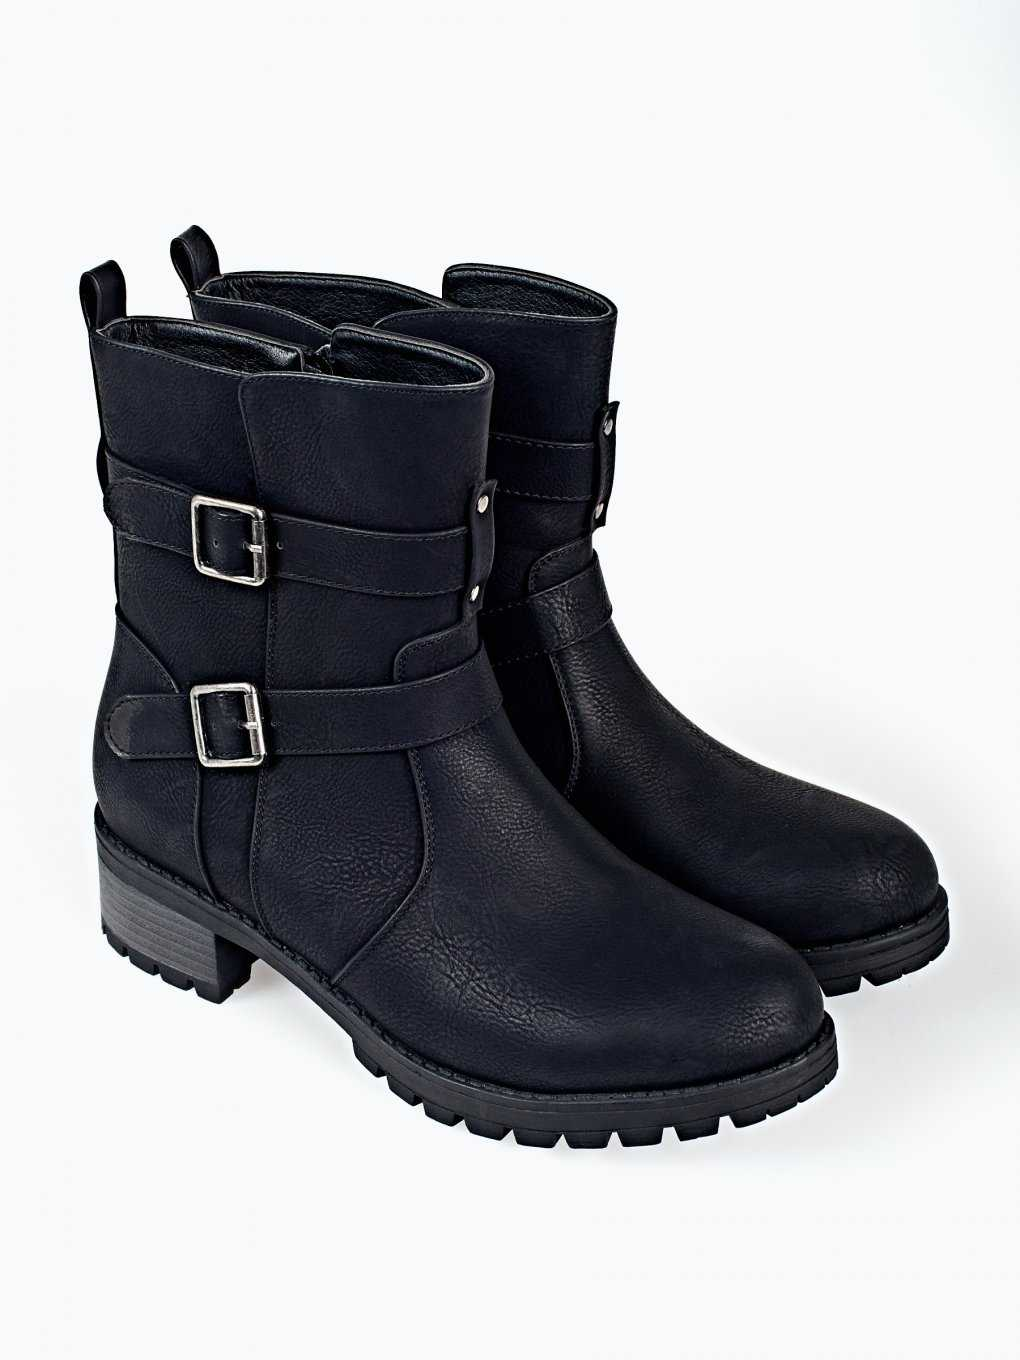 Ankle boots with buckle details